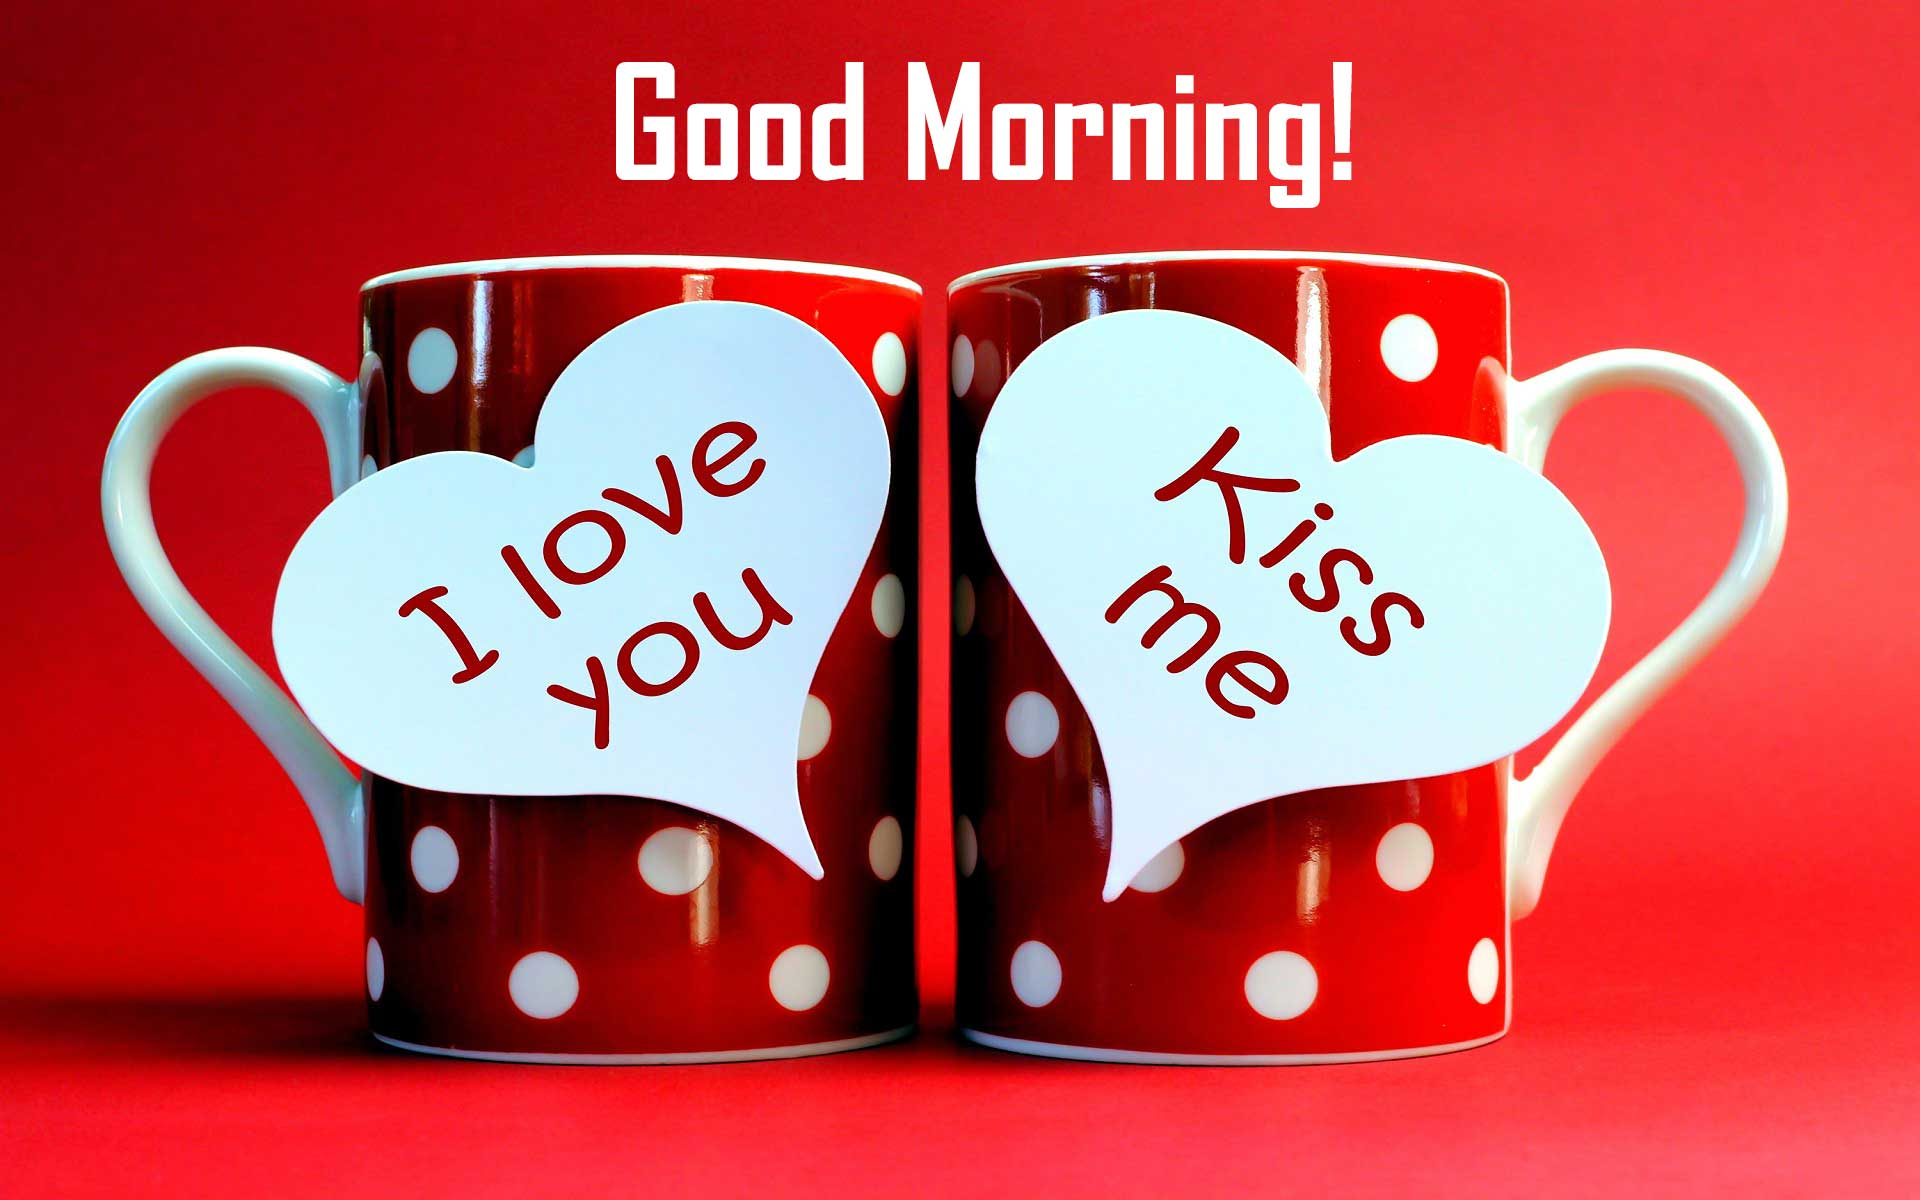 Good morning love images for lover - 2 cups